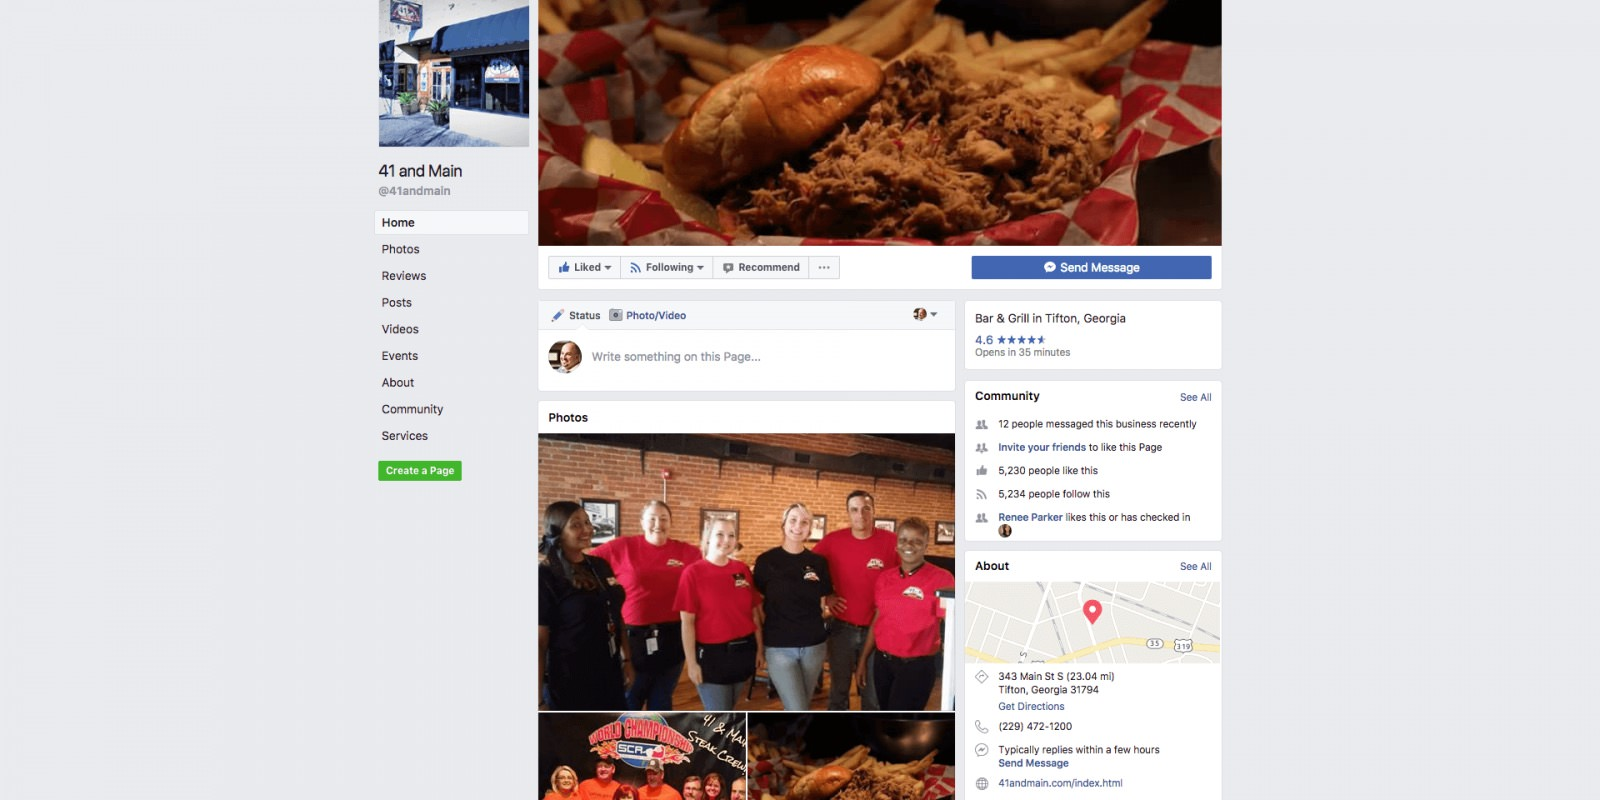 Current Facebook Page For 41 and Main Restaurant in Tifton, GA